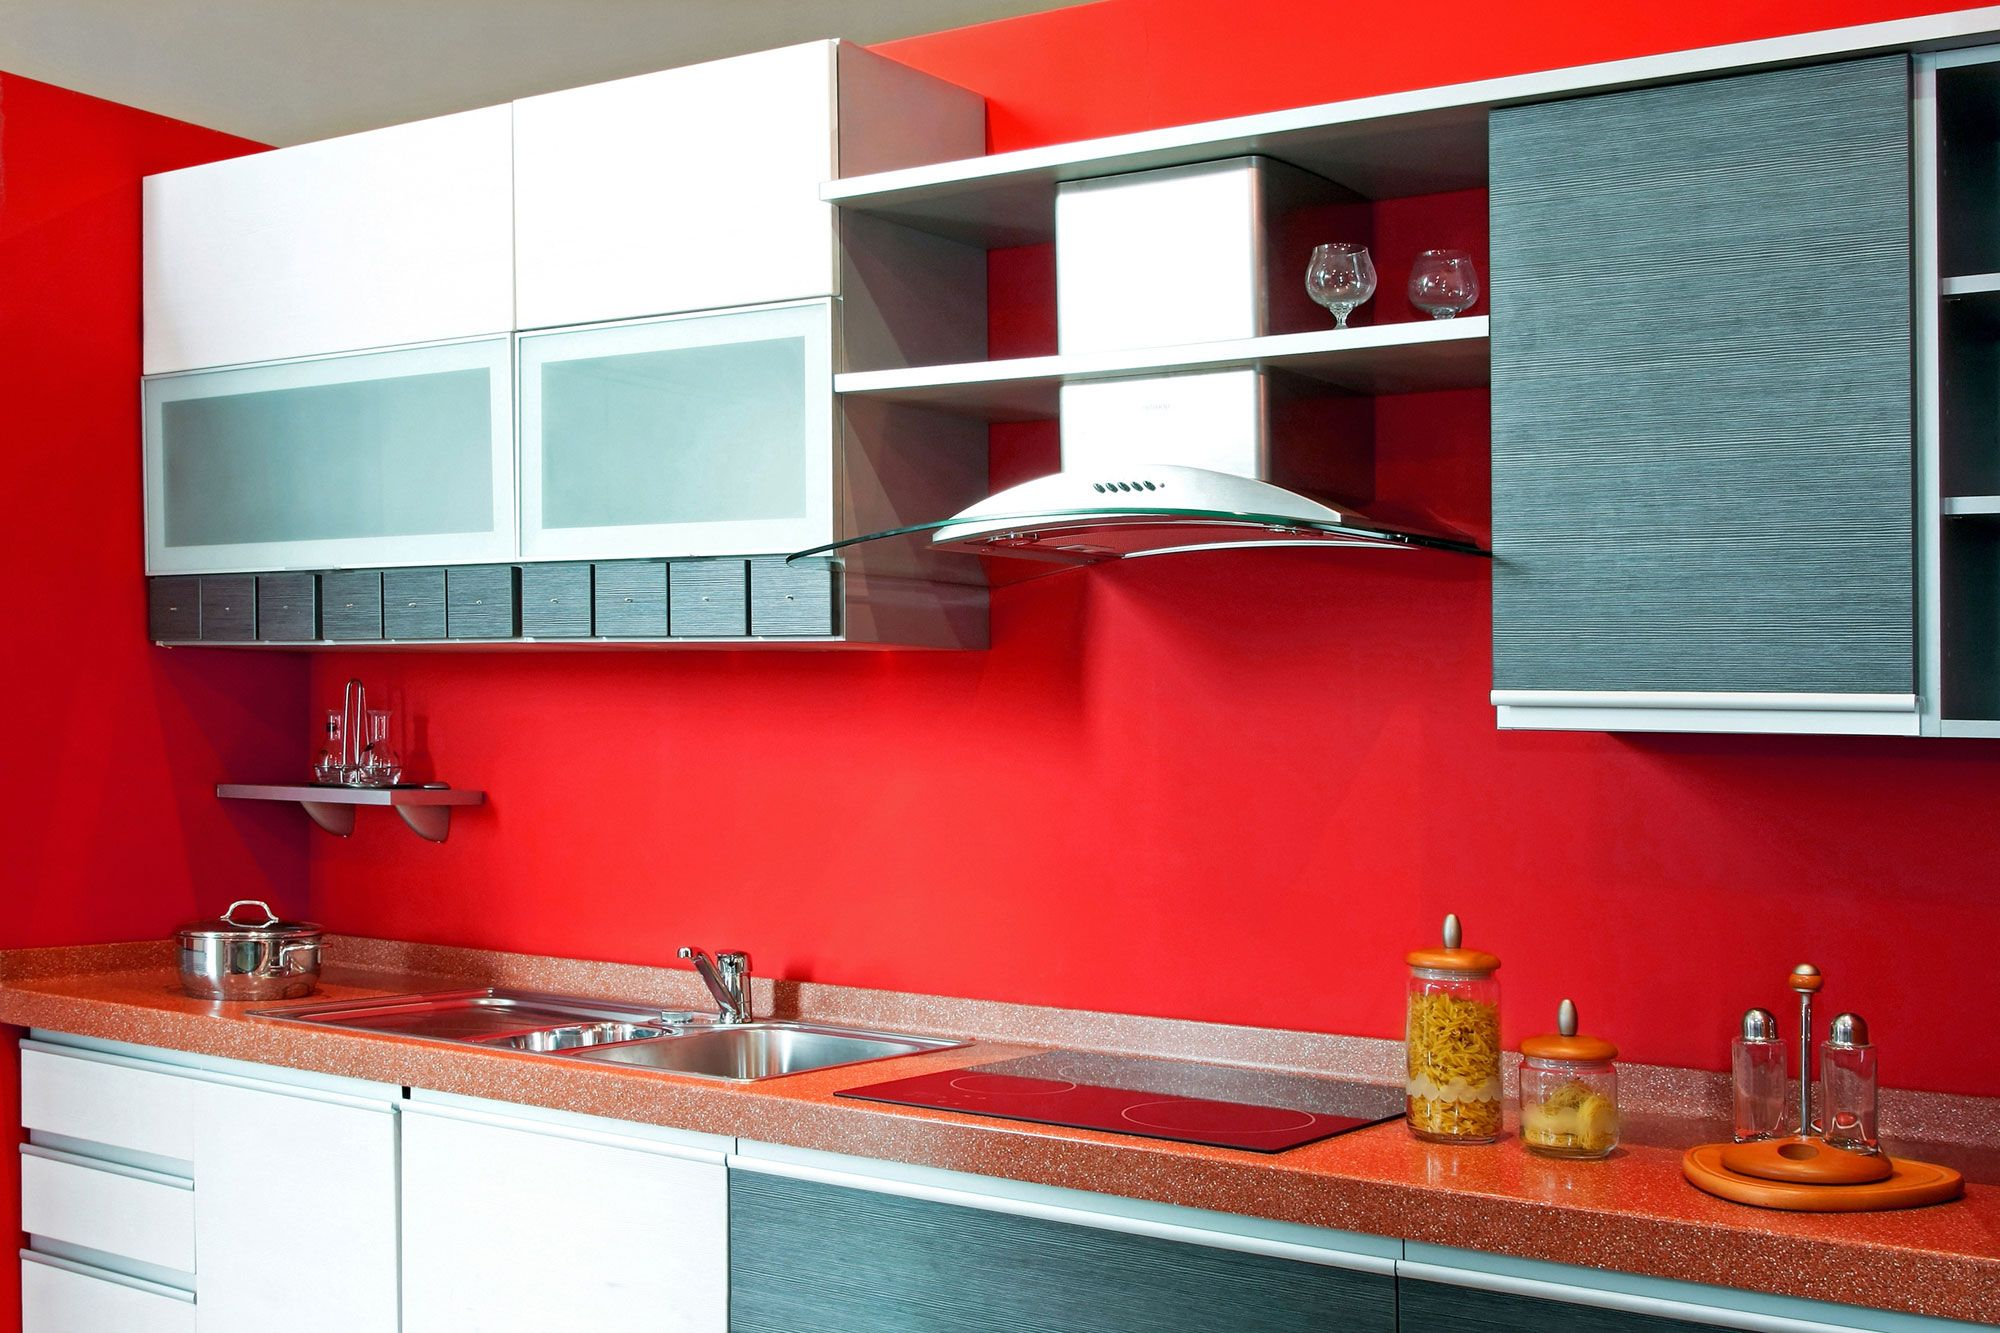 Decoraci n de cocinas en color rojo hogarmania for Decoracion para pared de cocina